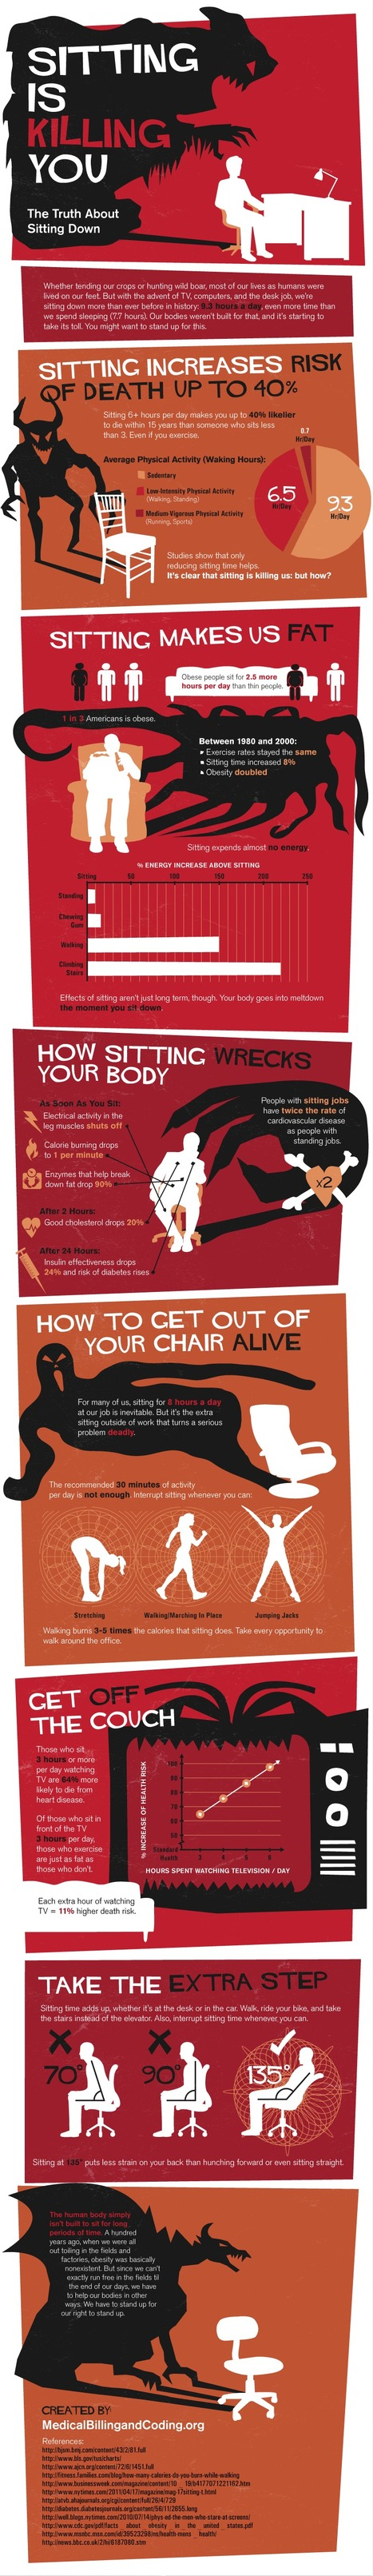 Health Review - How Sitting all day Decreases Human Life | Infographics | The Healthy & Green Consumer | Scoop.it